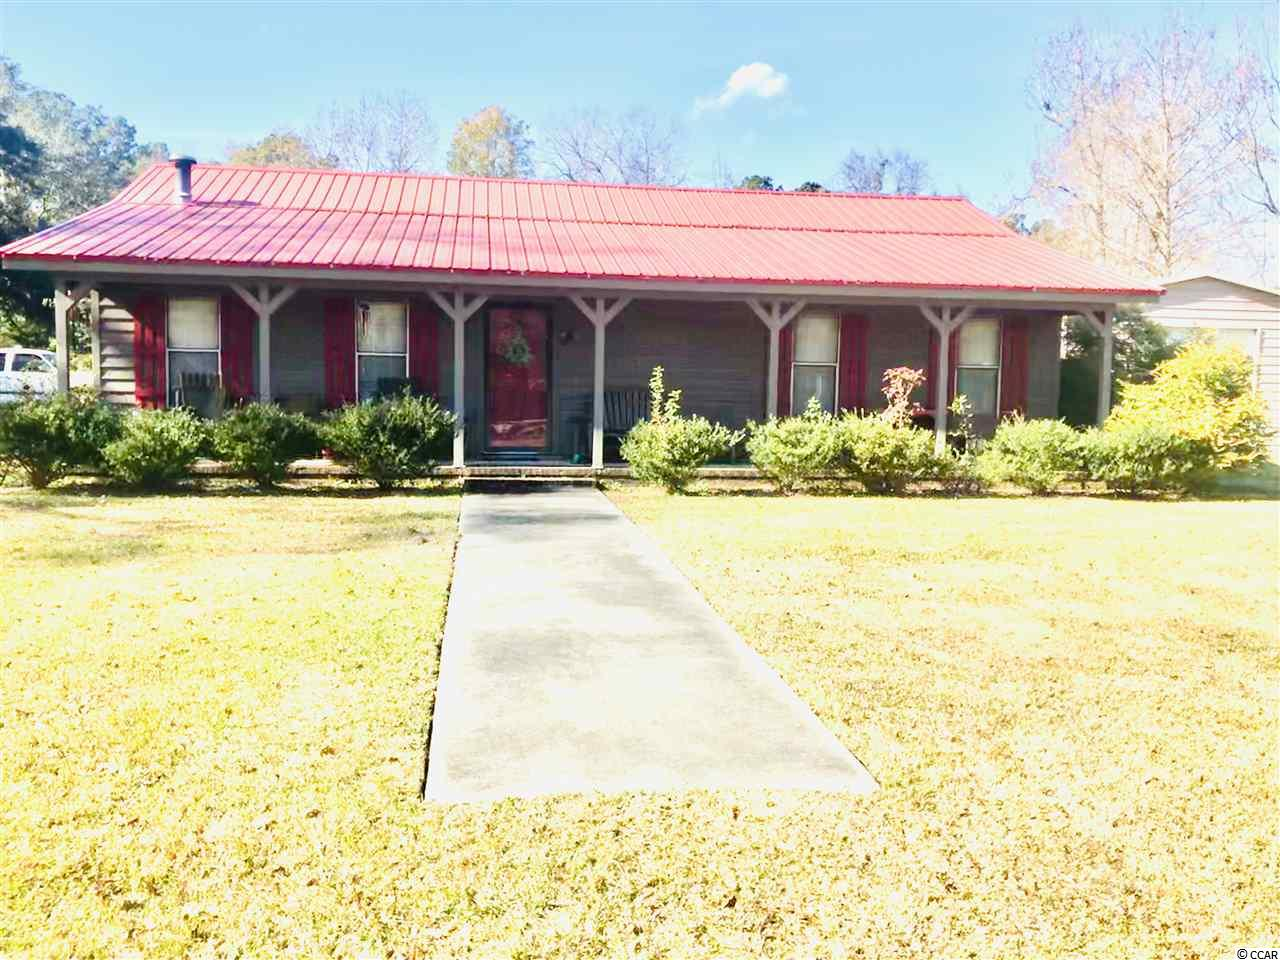 Who doesn't want a house with a red roof and a front porch as wide as the house?! The Lakewood neighborhood in the Kensington area of Georgetown is close to historic downtown without being in the city limits. This cute country style home sits on a corner 1/2 acre lot on a quiet street. An attached side load garage with a storage room is not the only place to store the car, boat, camper or motorcycles. The 24' x 30' shop, with it's on driveway, has plenty of room for all the toys! Rock on the front porch all day and by night sit by the fire pit on the patio in the privacy fenced in backyard where your furry friend can run around. Vaulted ceilings in the family room and the dining room make them feel even bigger than they already are. Both rooms also have built in shelving and storage. In the family room they line both sides of the wood stove and its brick accent wall. This 20' x 14' dining room can easily accommodate a 10-12 chair table.   If you love the red roof and shutters you'll love the kitchen cabinets too. They are also painted red!  Stainless appliances, breakfast bar and room for a breakfast table make for a roomy kitchen. The master bedroom is a great size with an on suite bathroom and walk in closet. The second bedroom is just as roomy with an extra door to the larger than normal hall bathroom.  Conveniently located just inside from the garage is a 1/2 bath and the laundry area. And did I mention that 24 x 30 shop?!!!! Home Warranty for 1 year from the Seller. NO HOA!  Square footage is approximate and not guaranteed. Buyer is responsible for verification.